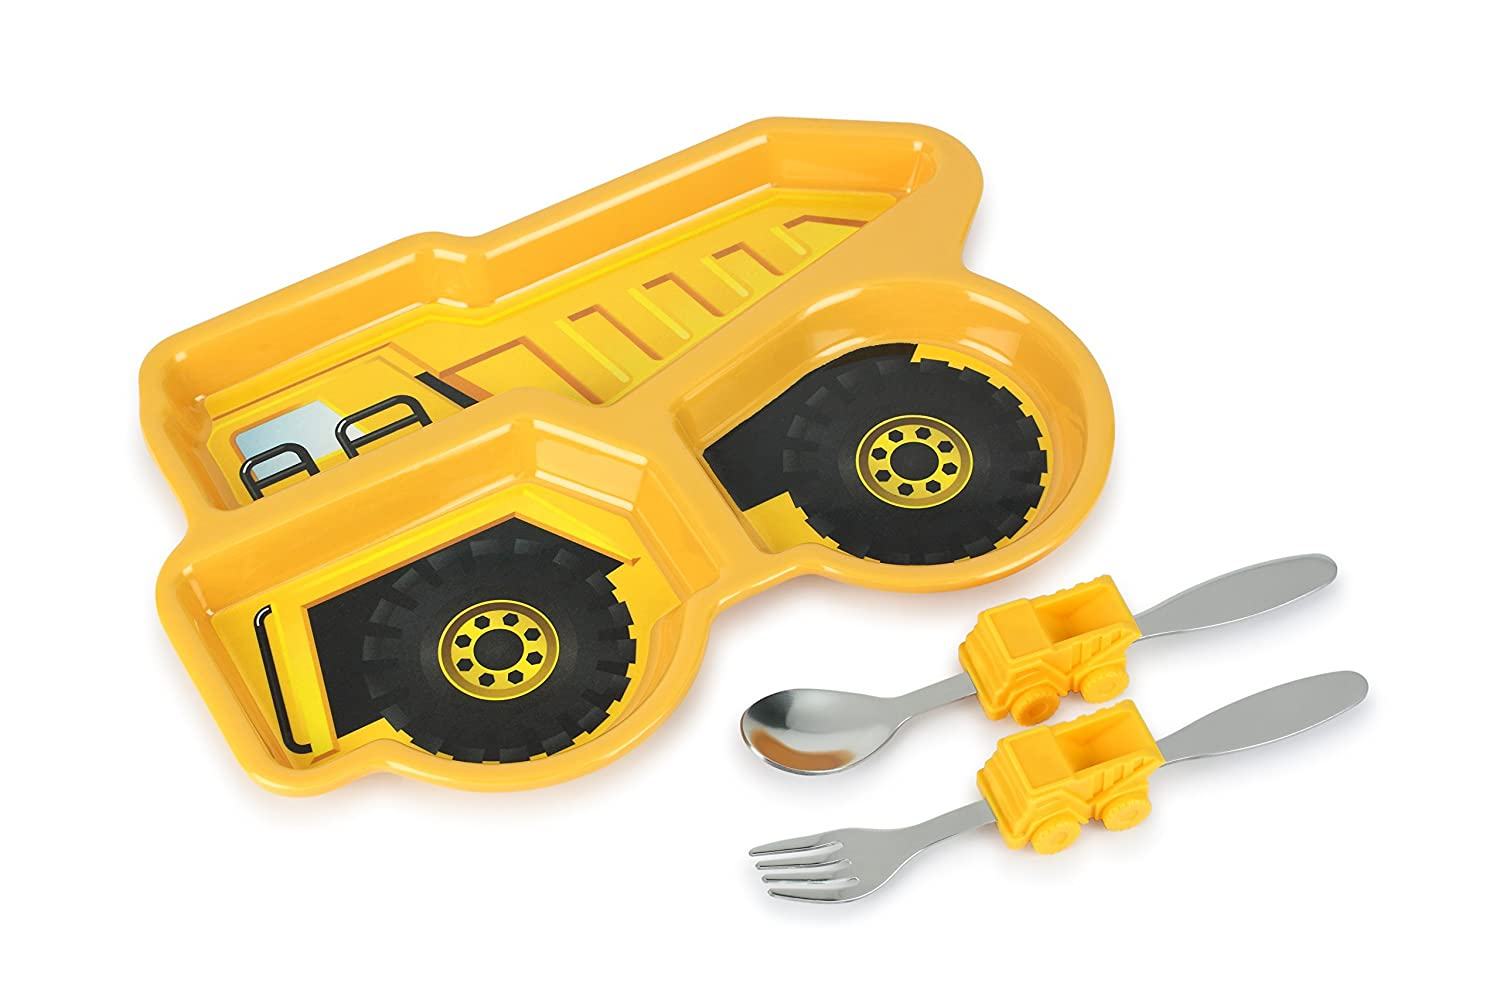 amazon com kidsfunwares me time meal set dump truck 3 piece